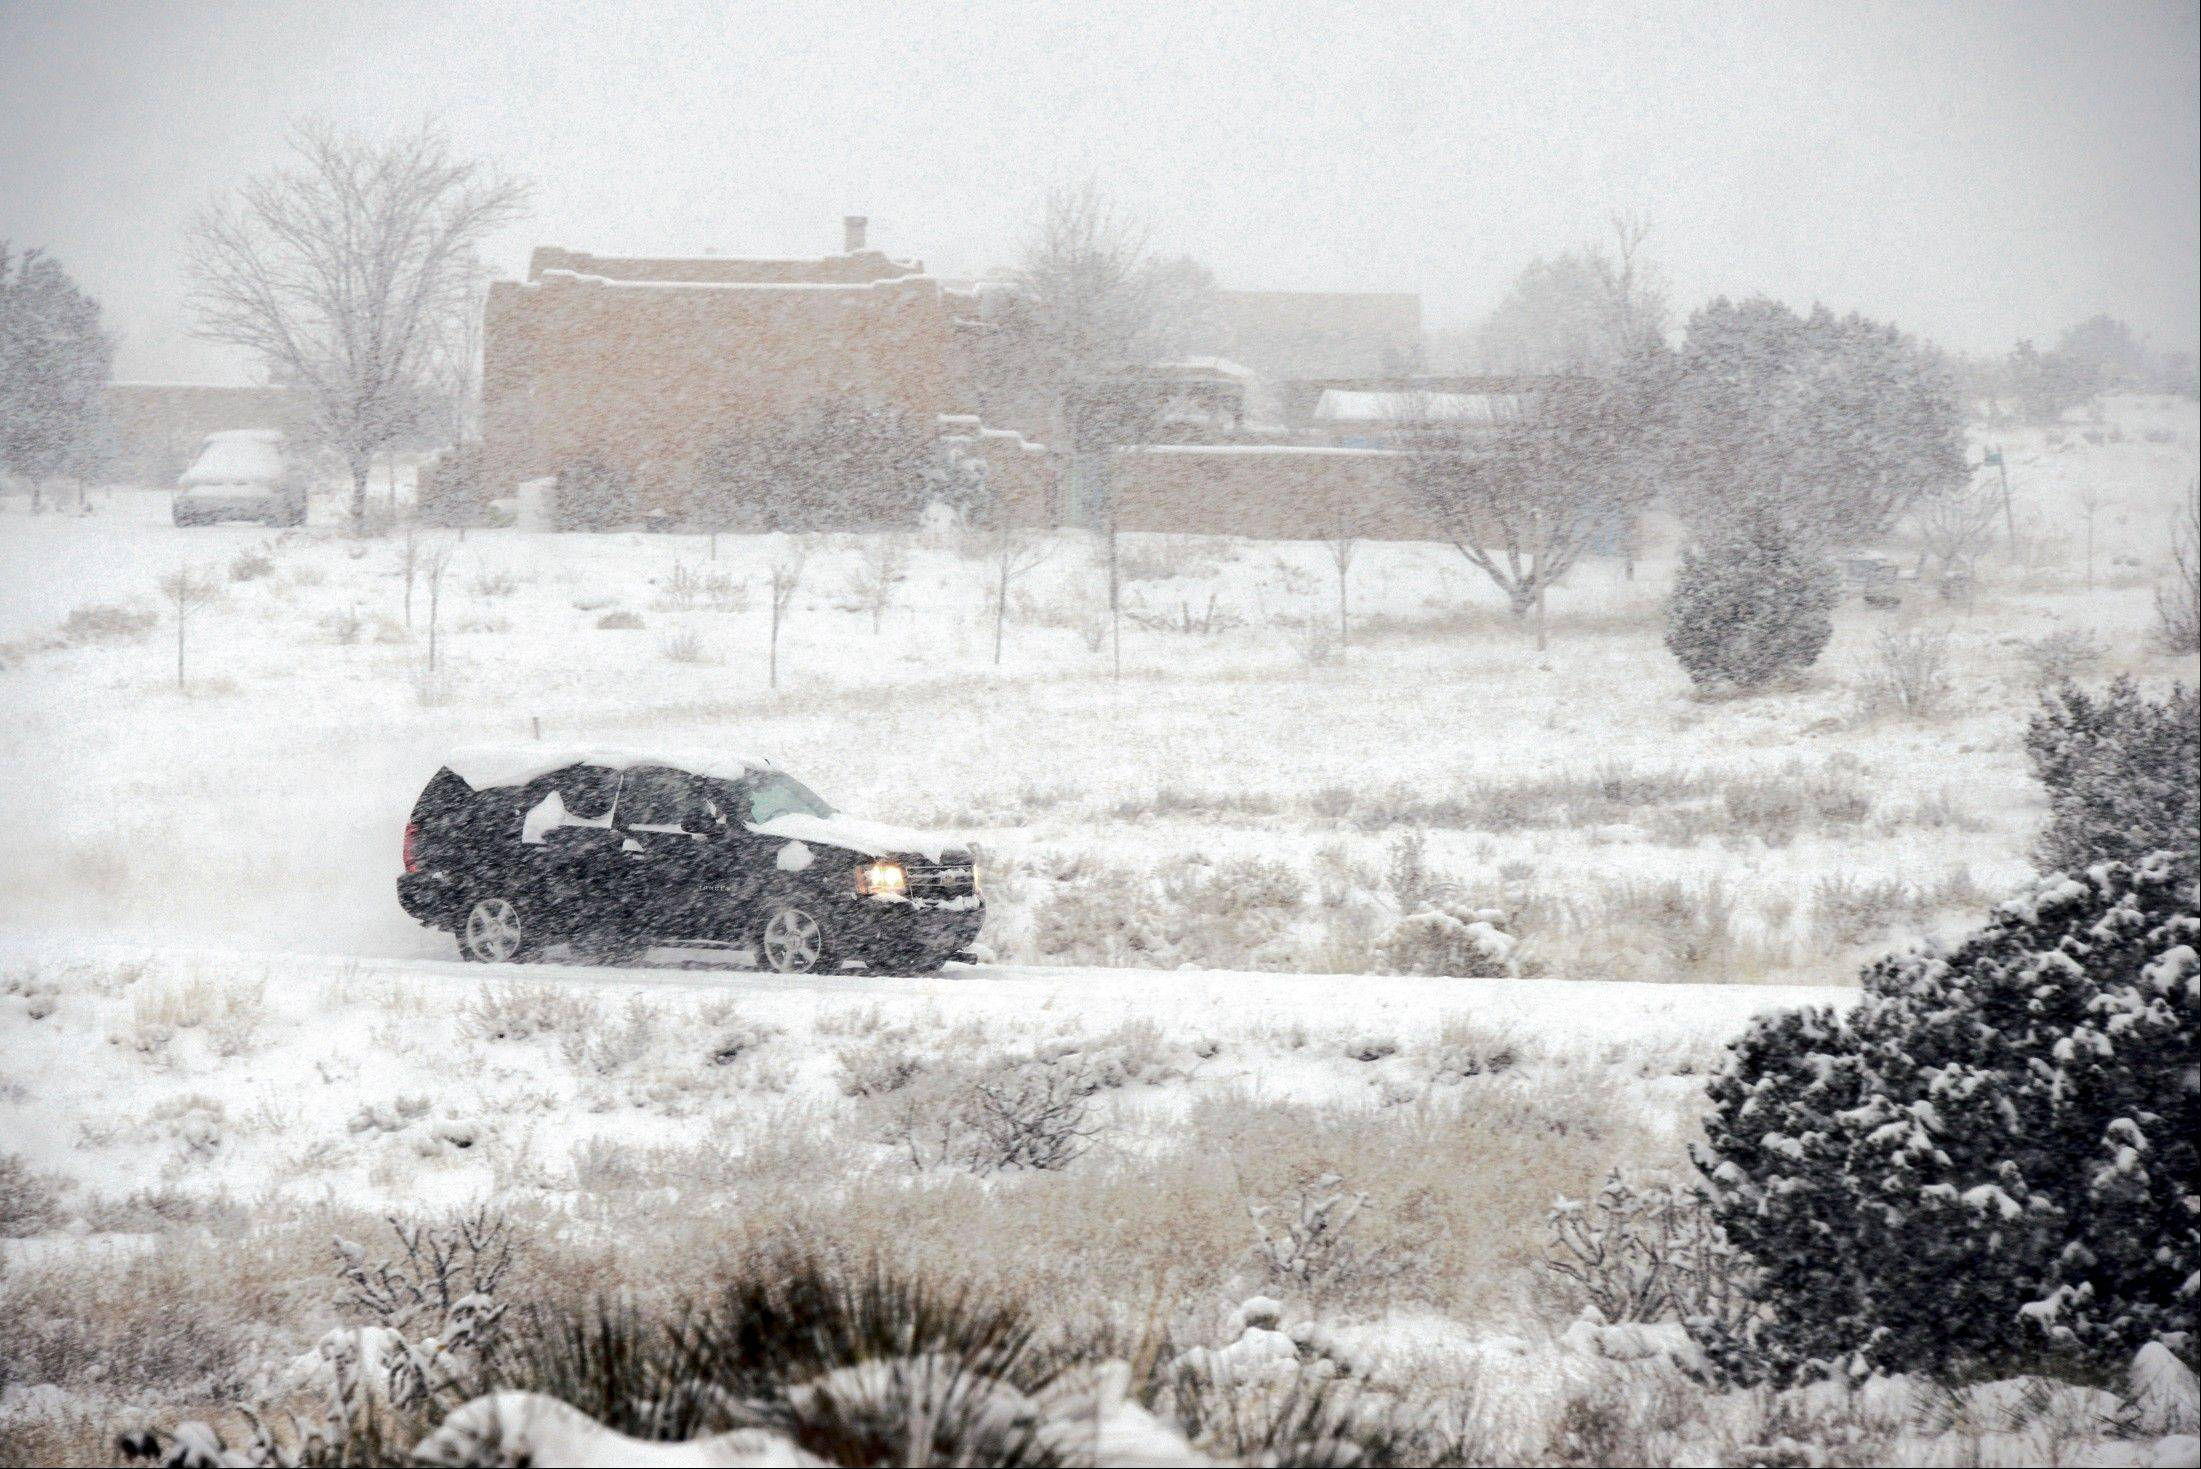 A driver makes their way up a snow covered Monte Alto Rd in Eldorado, N.M., early Thursday, Dec. 5, 2013. Some northern New Mexico highways have difficult driving conditions Thursday as the latest blast of freezing temperatures, wind and snow causes delays and closures in parts of the state.